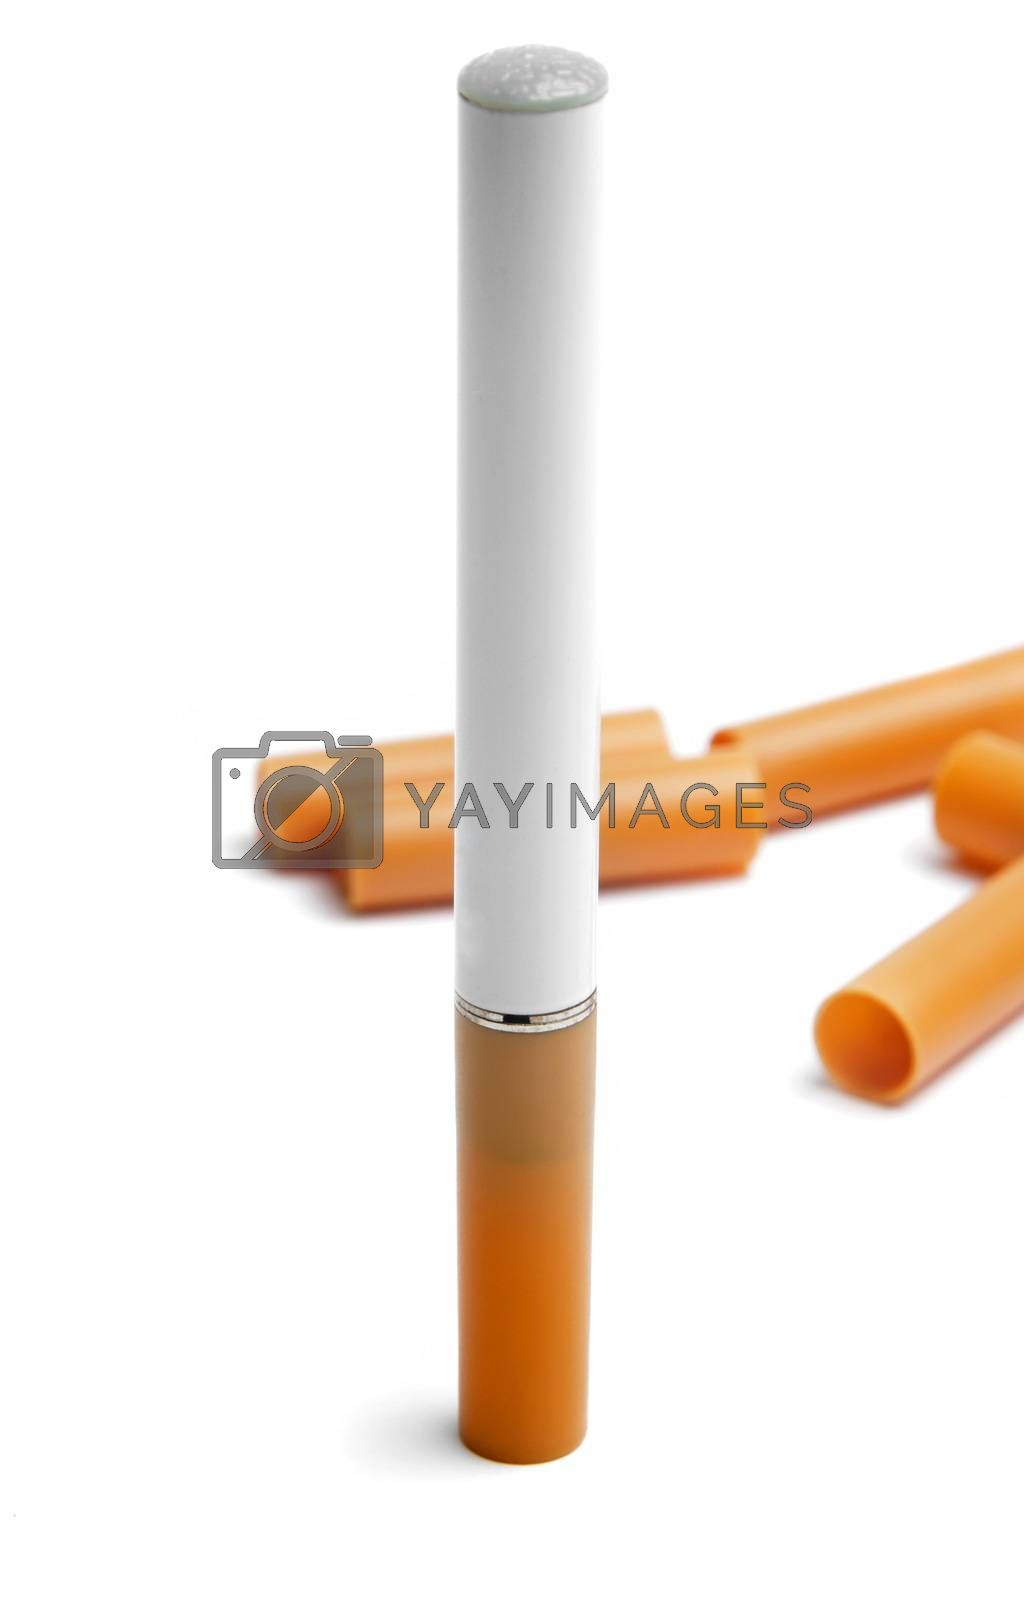 electronic cigarette with filters on white